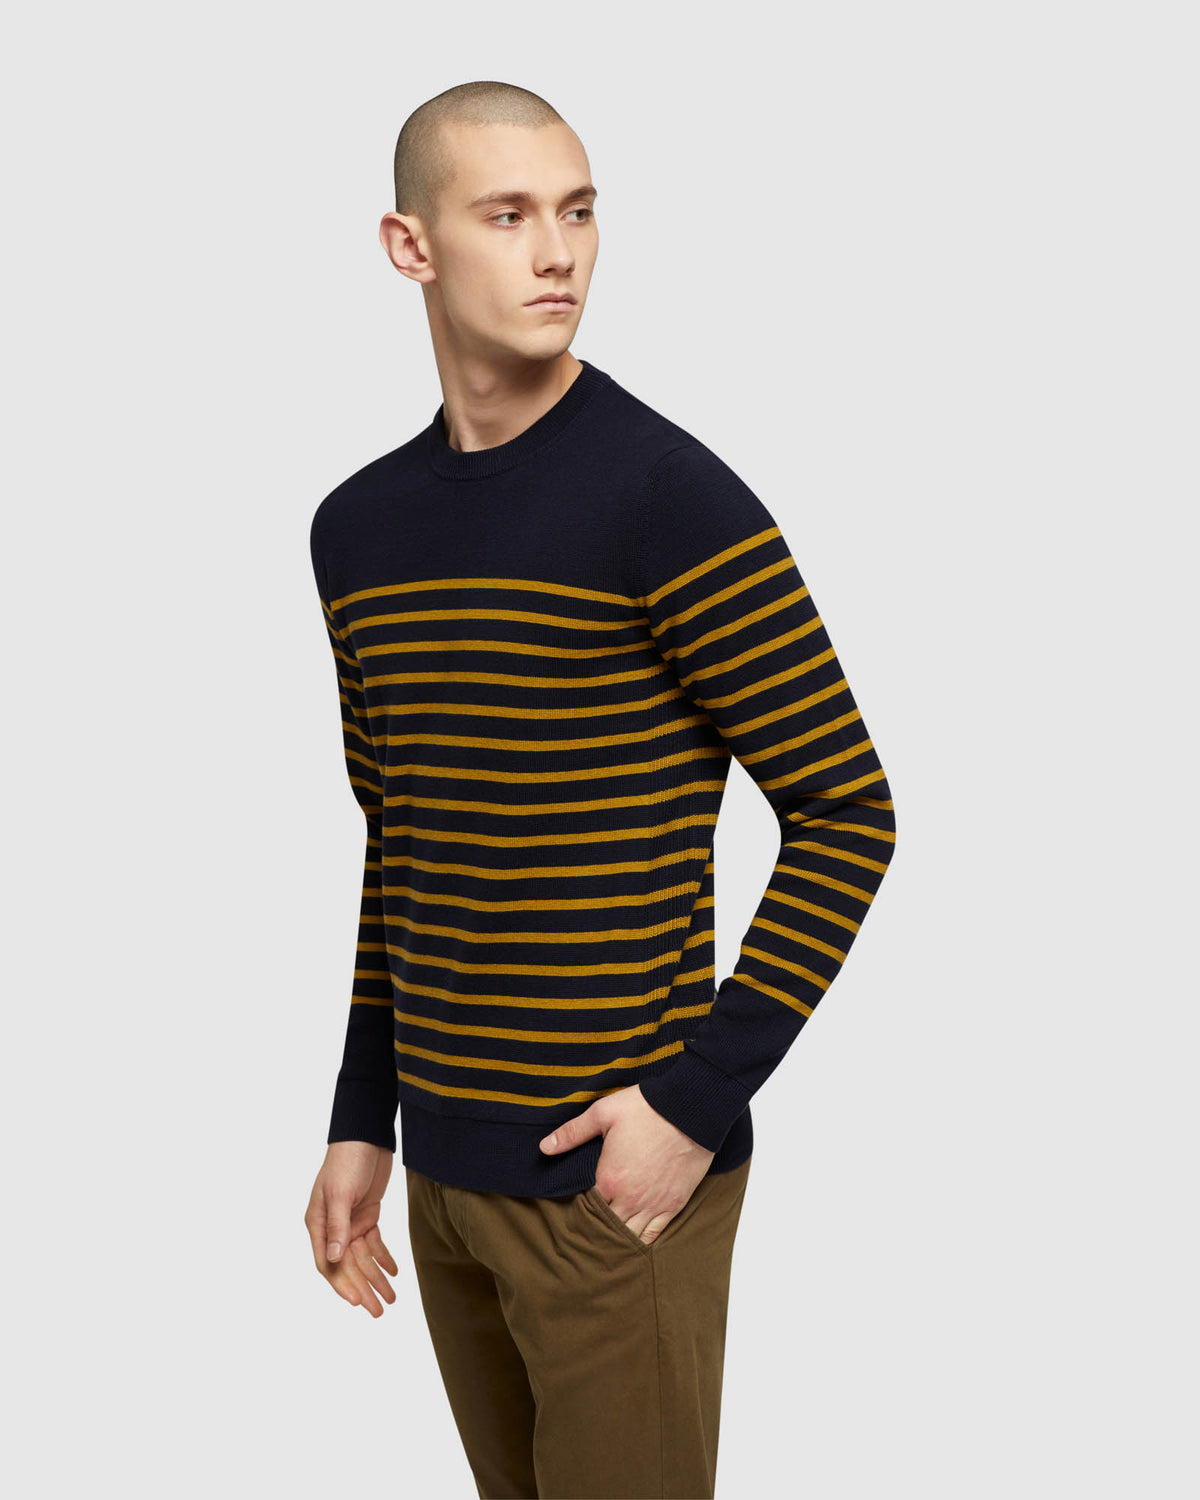 WYATT STRIPE CREW NECK PULLOVER NAVY